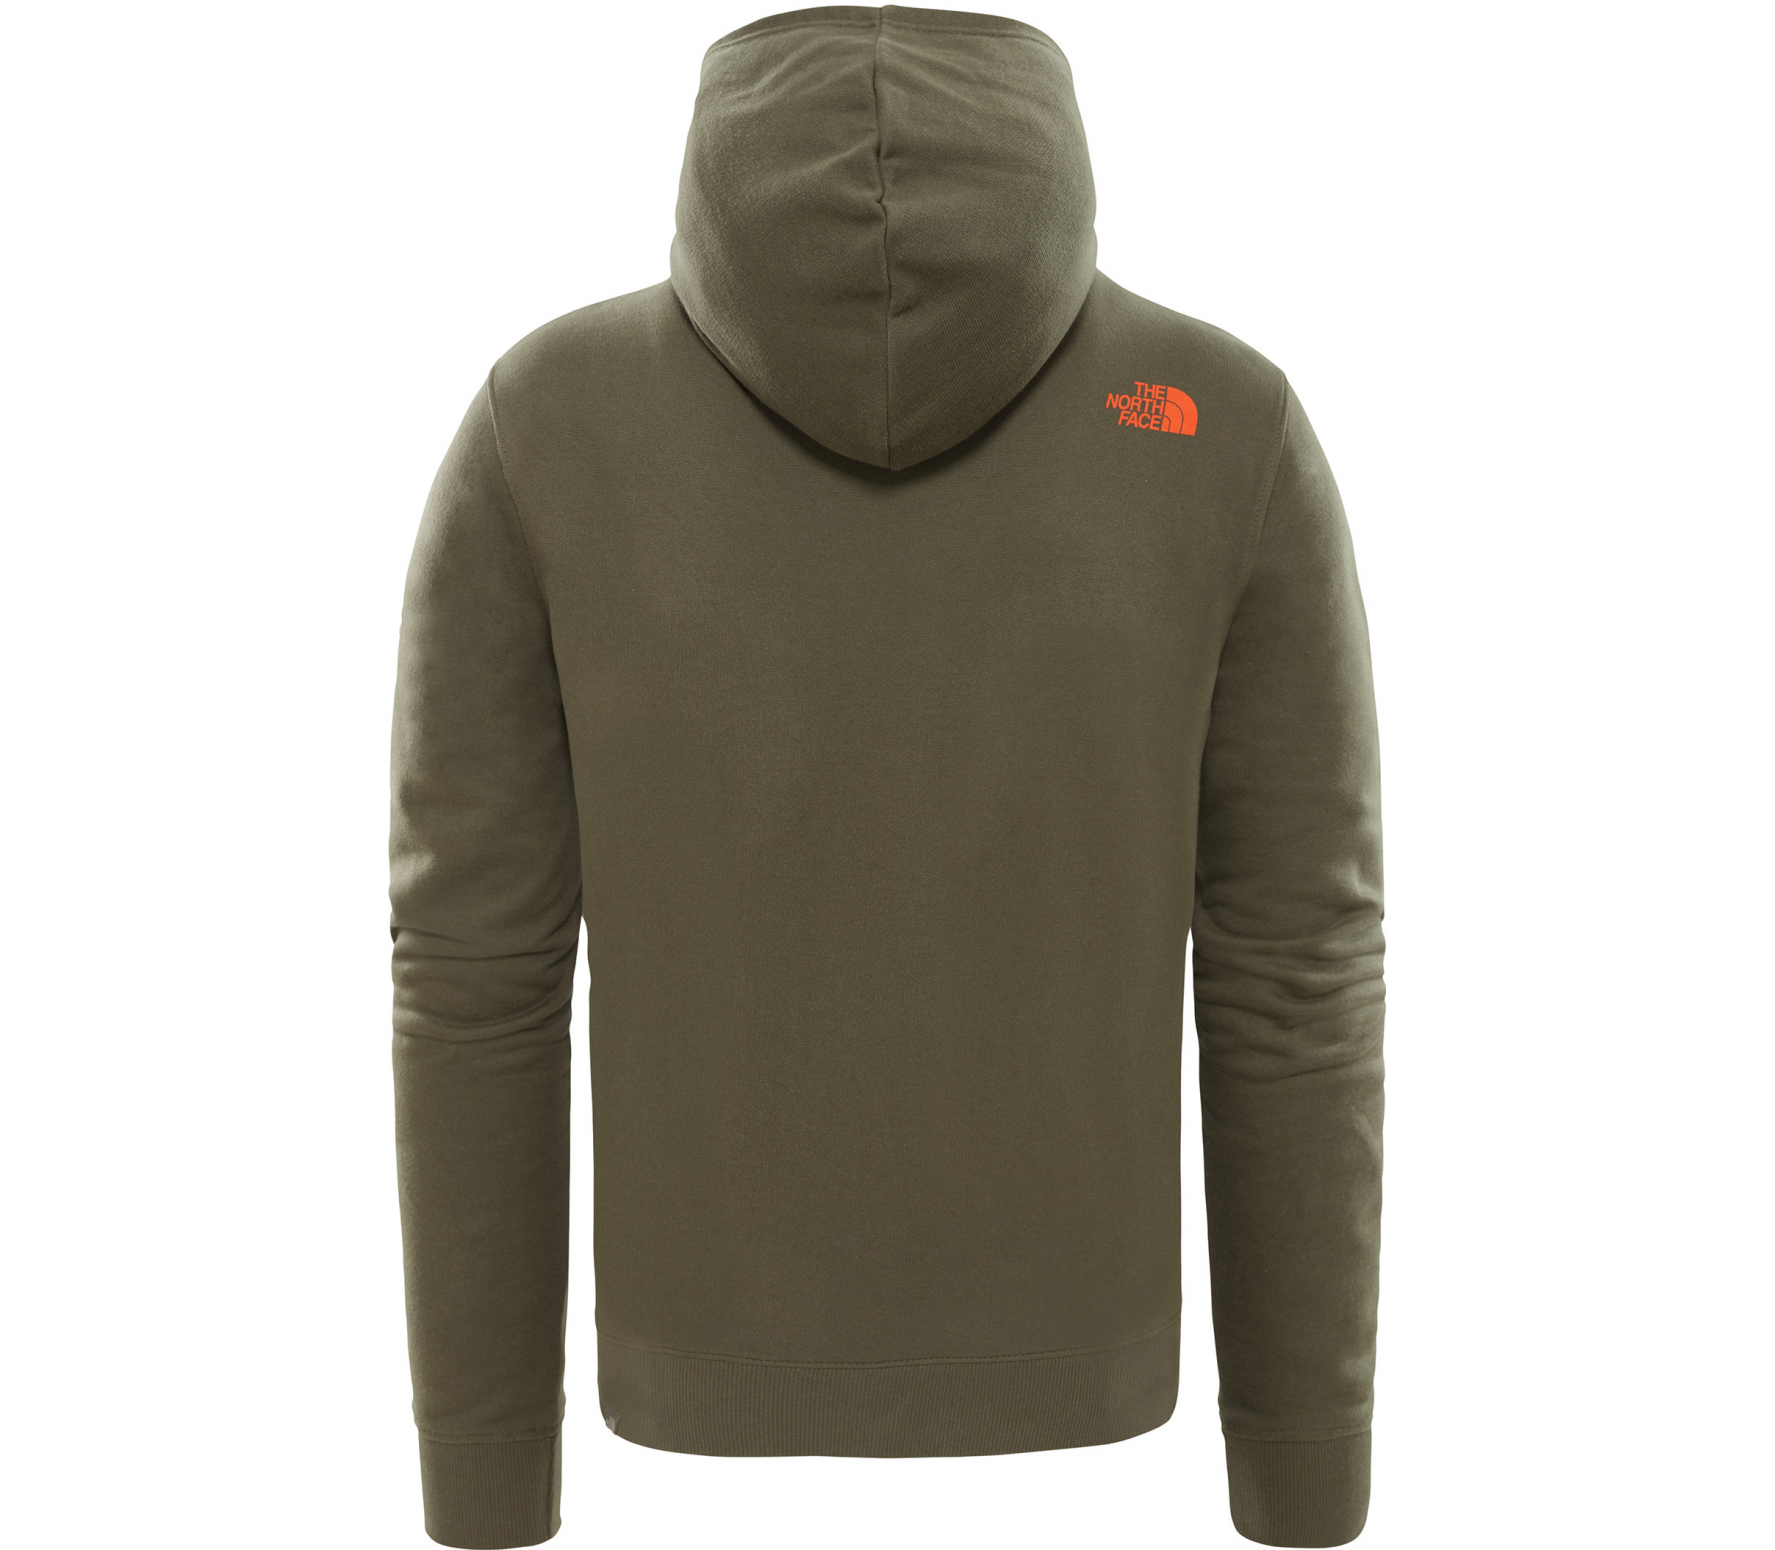 04f74236d8b7 The North Face - Open Gate Herren Hoodie (grün) im Online Shop ...